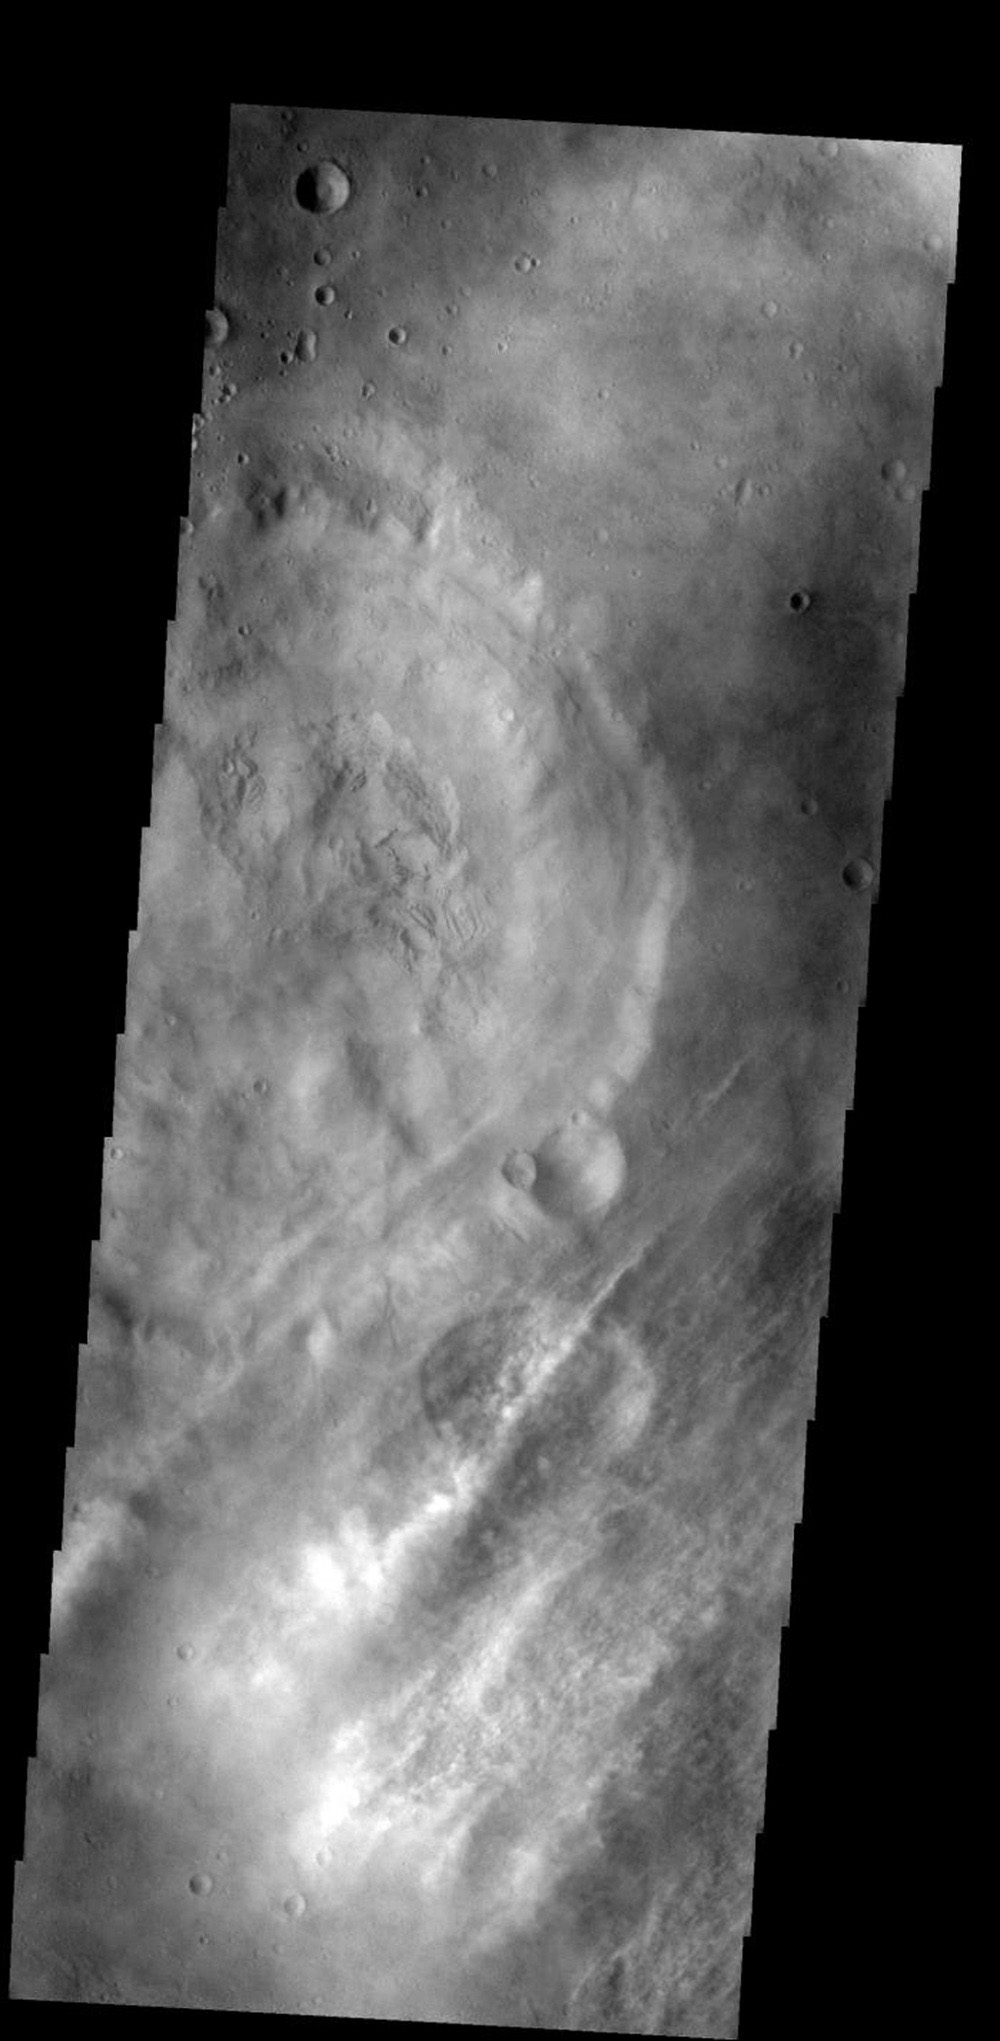 These streamers of clouds cross over a small crater on Mars without deflection as seen by NASA's 2001 Mars Odyssey spacecraft.